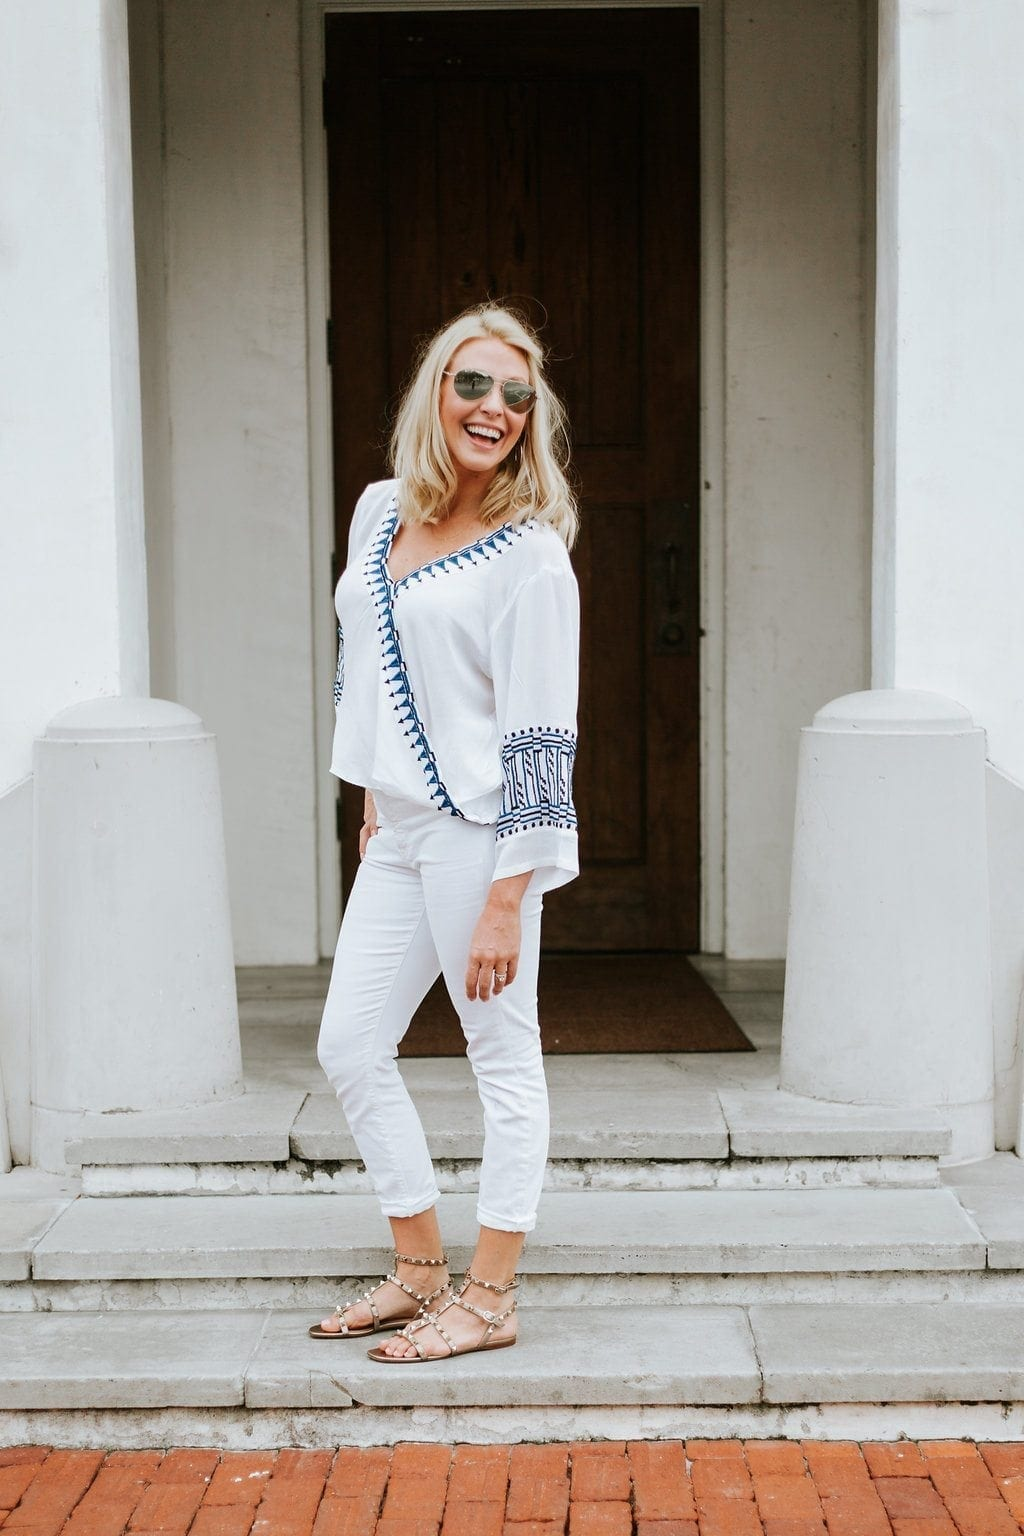 White and blue embroidered shirt. White vacation outfit.